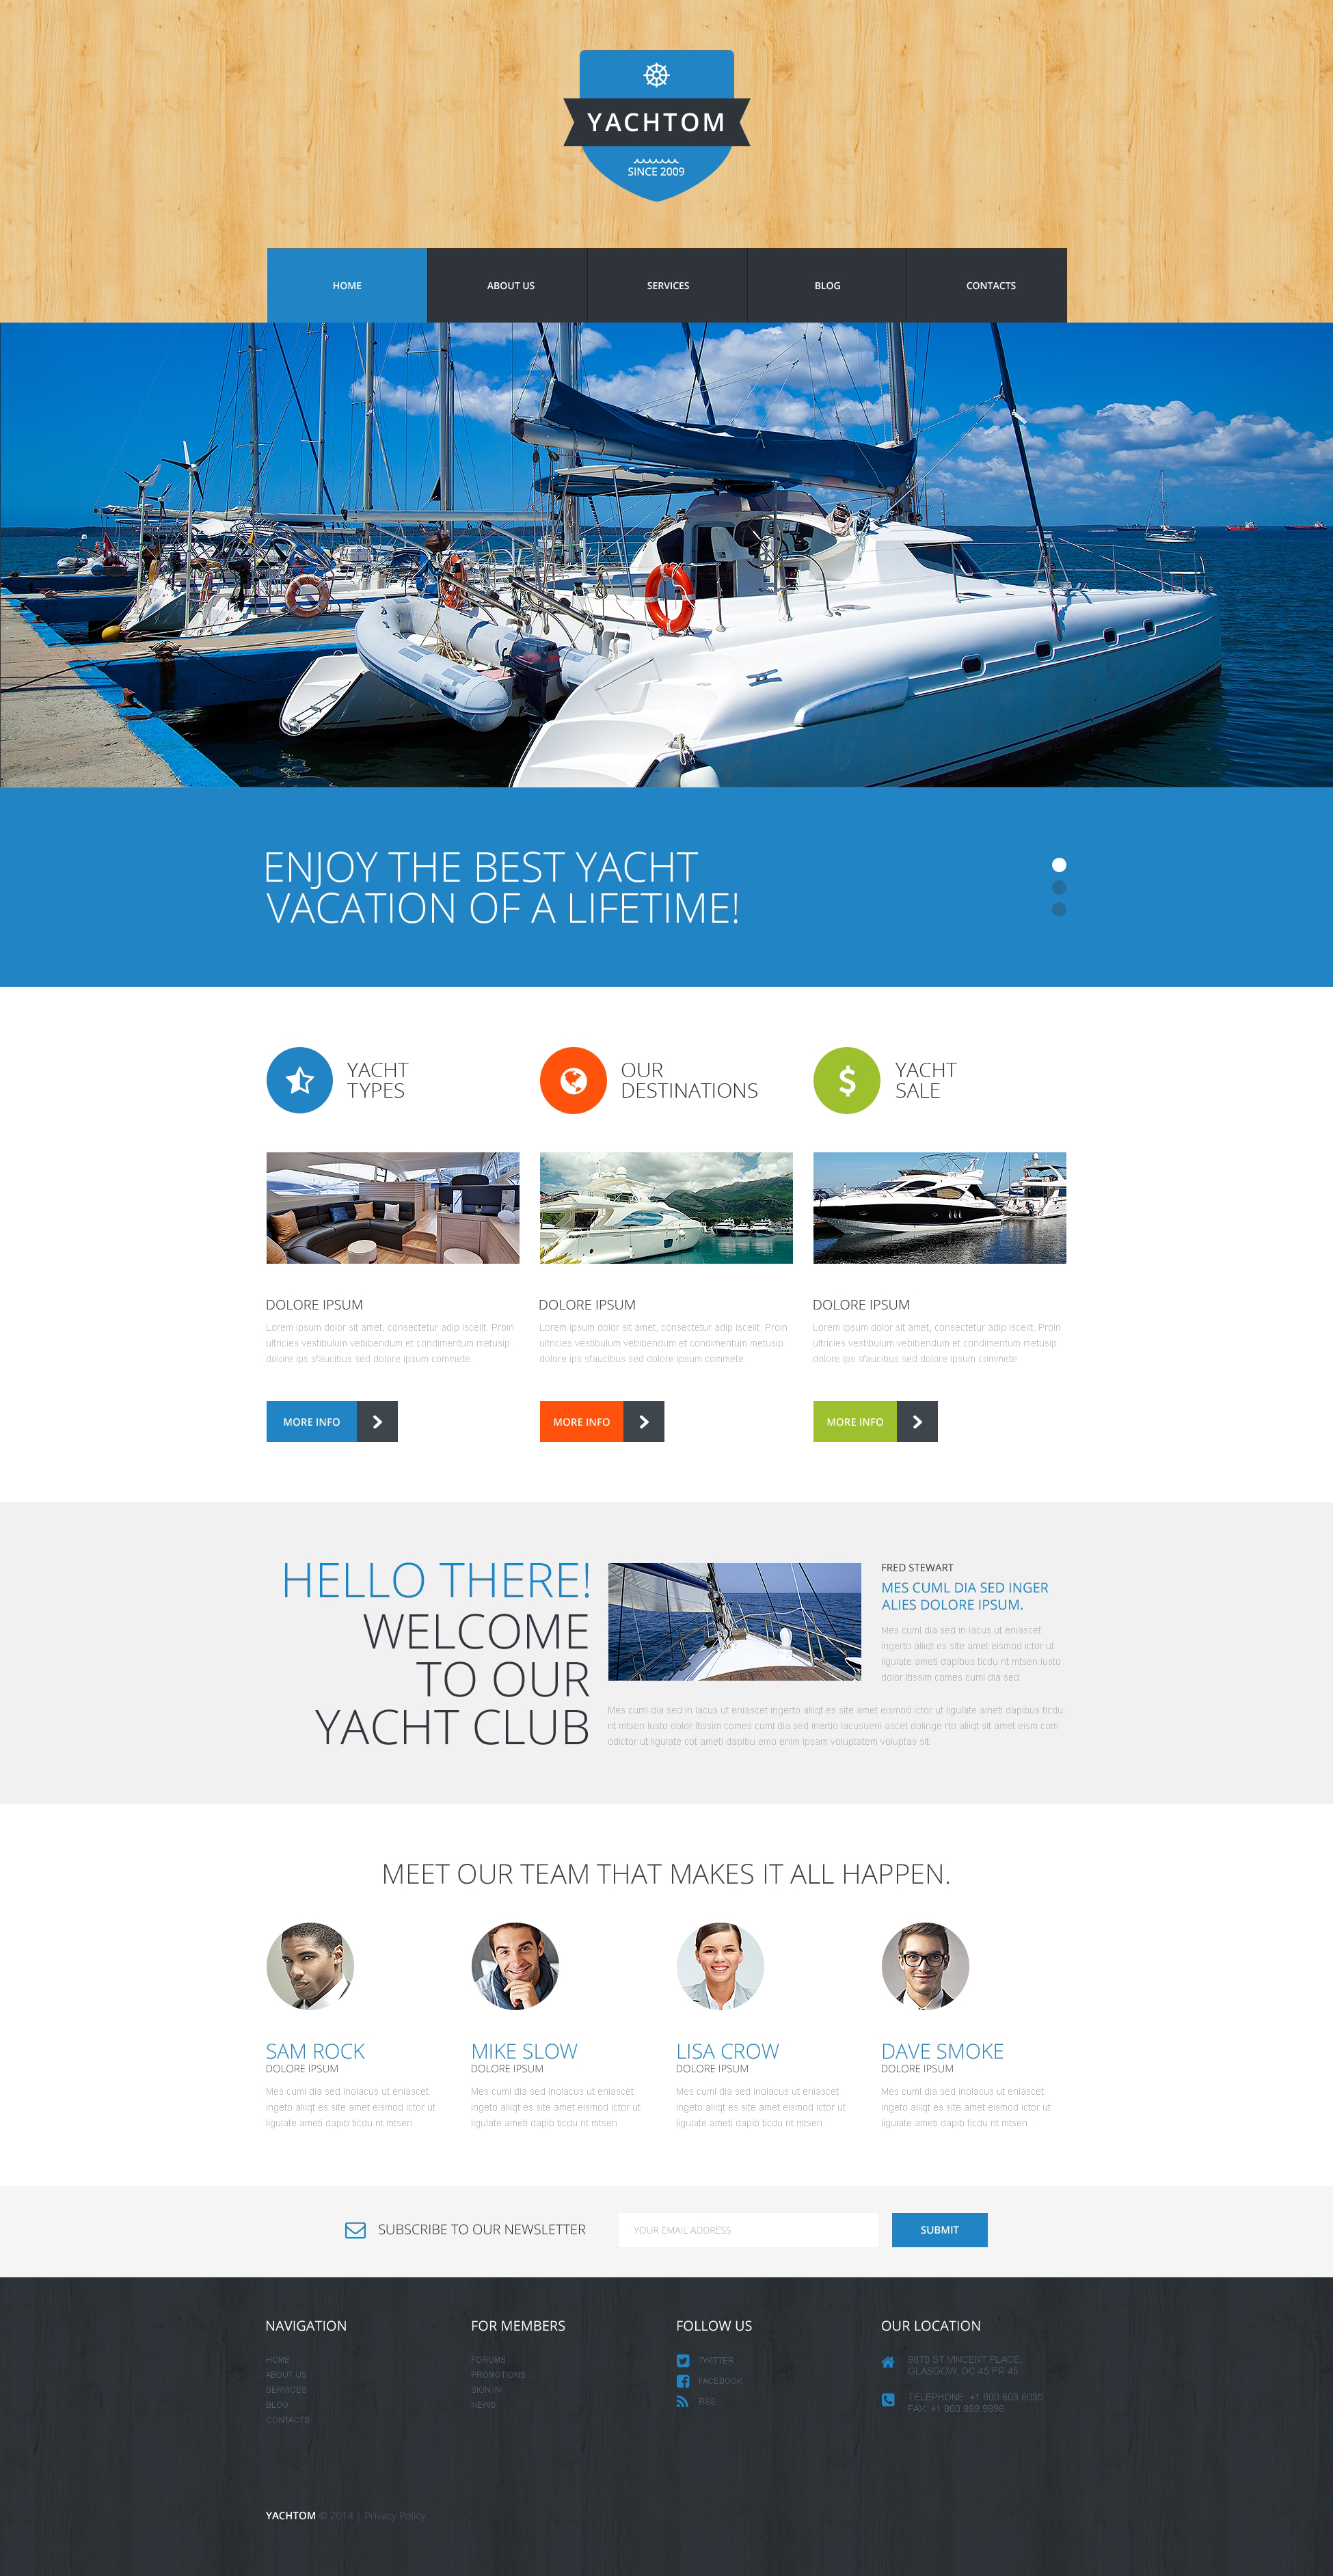 Pleasant yachting experience wordpress theme 50885 pleasant yachting experience wordpress theme toneelgroepblik Image collections